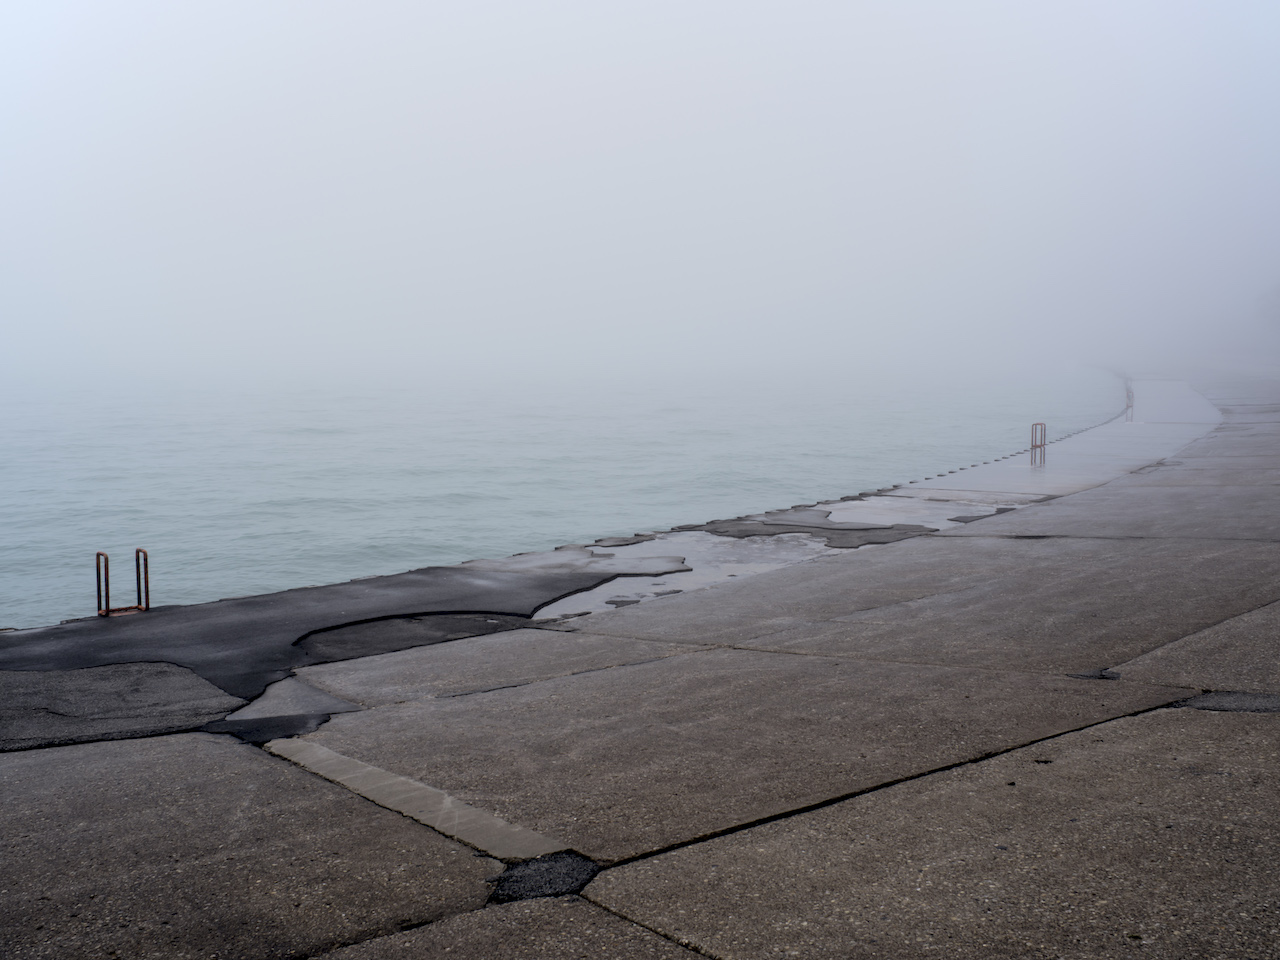 a heavy foggy day on Lake Michigan with wet concrete breaking up